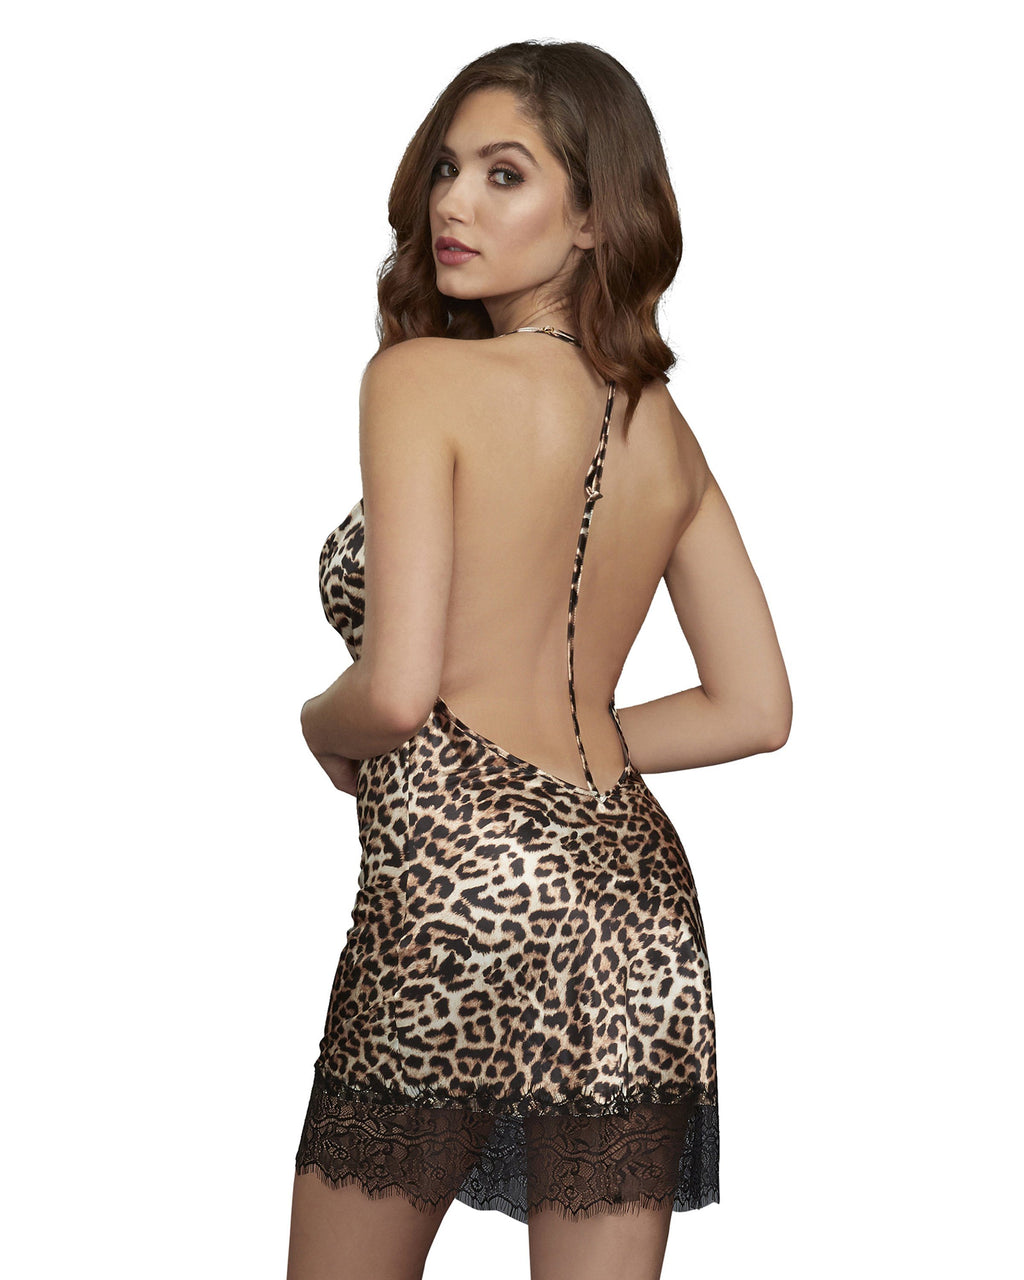 Leopard Print Silky Satin Bias-Cut Cowl Neck Chemise Chemise Dreamgirl International